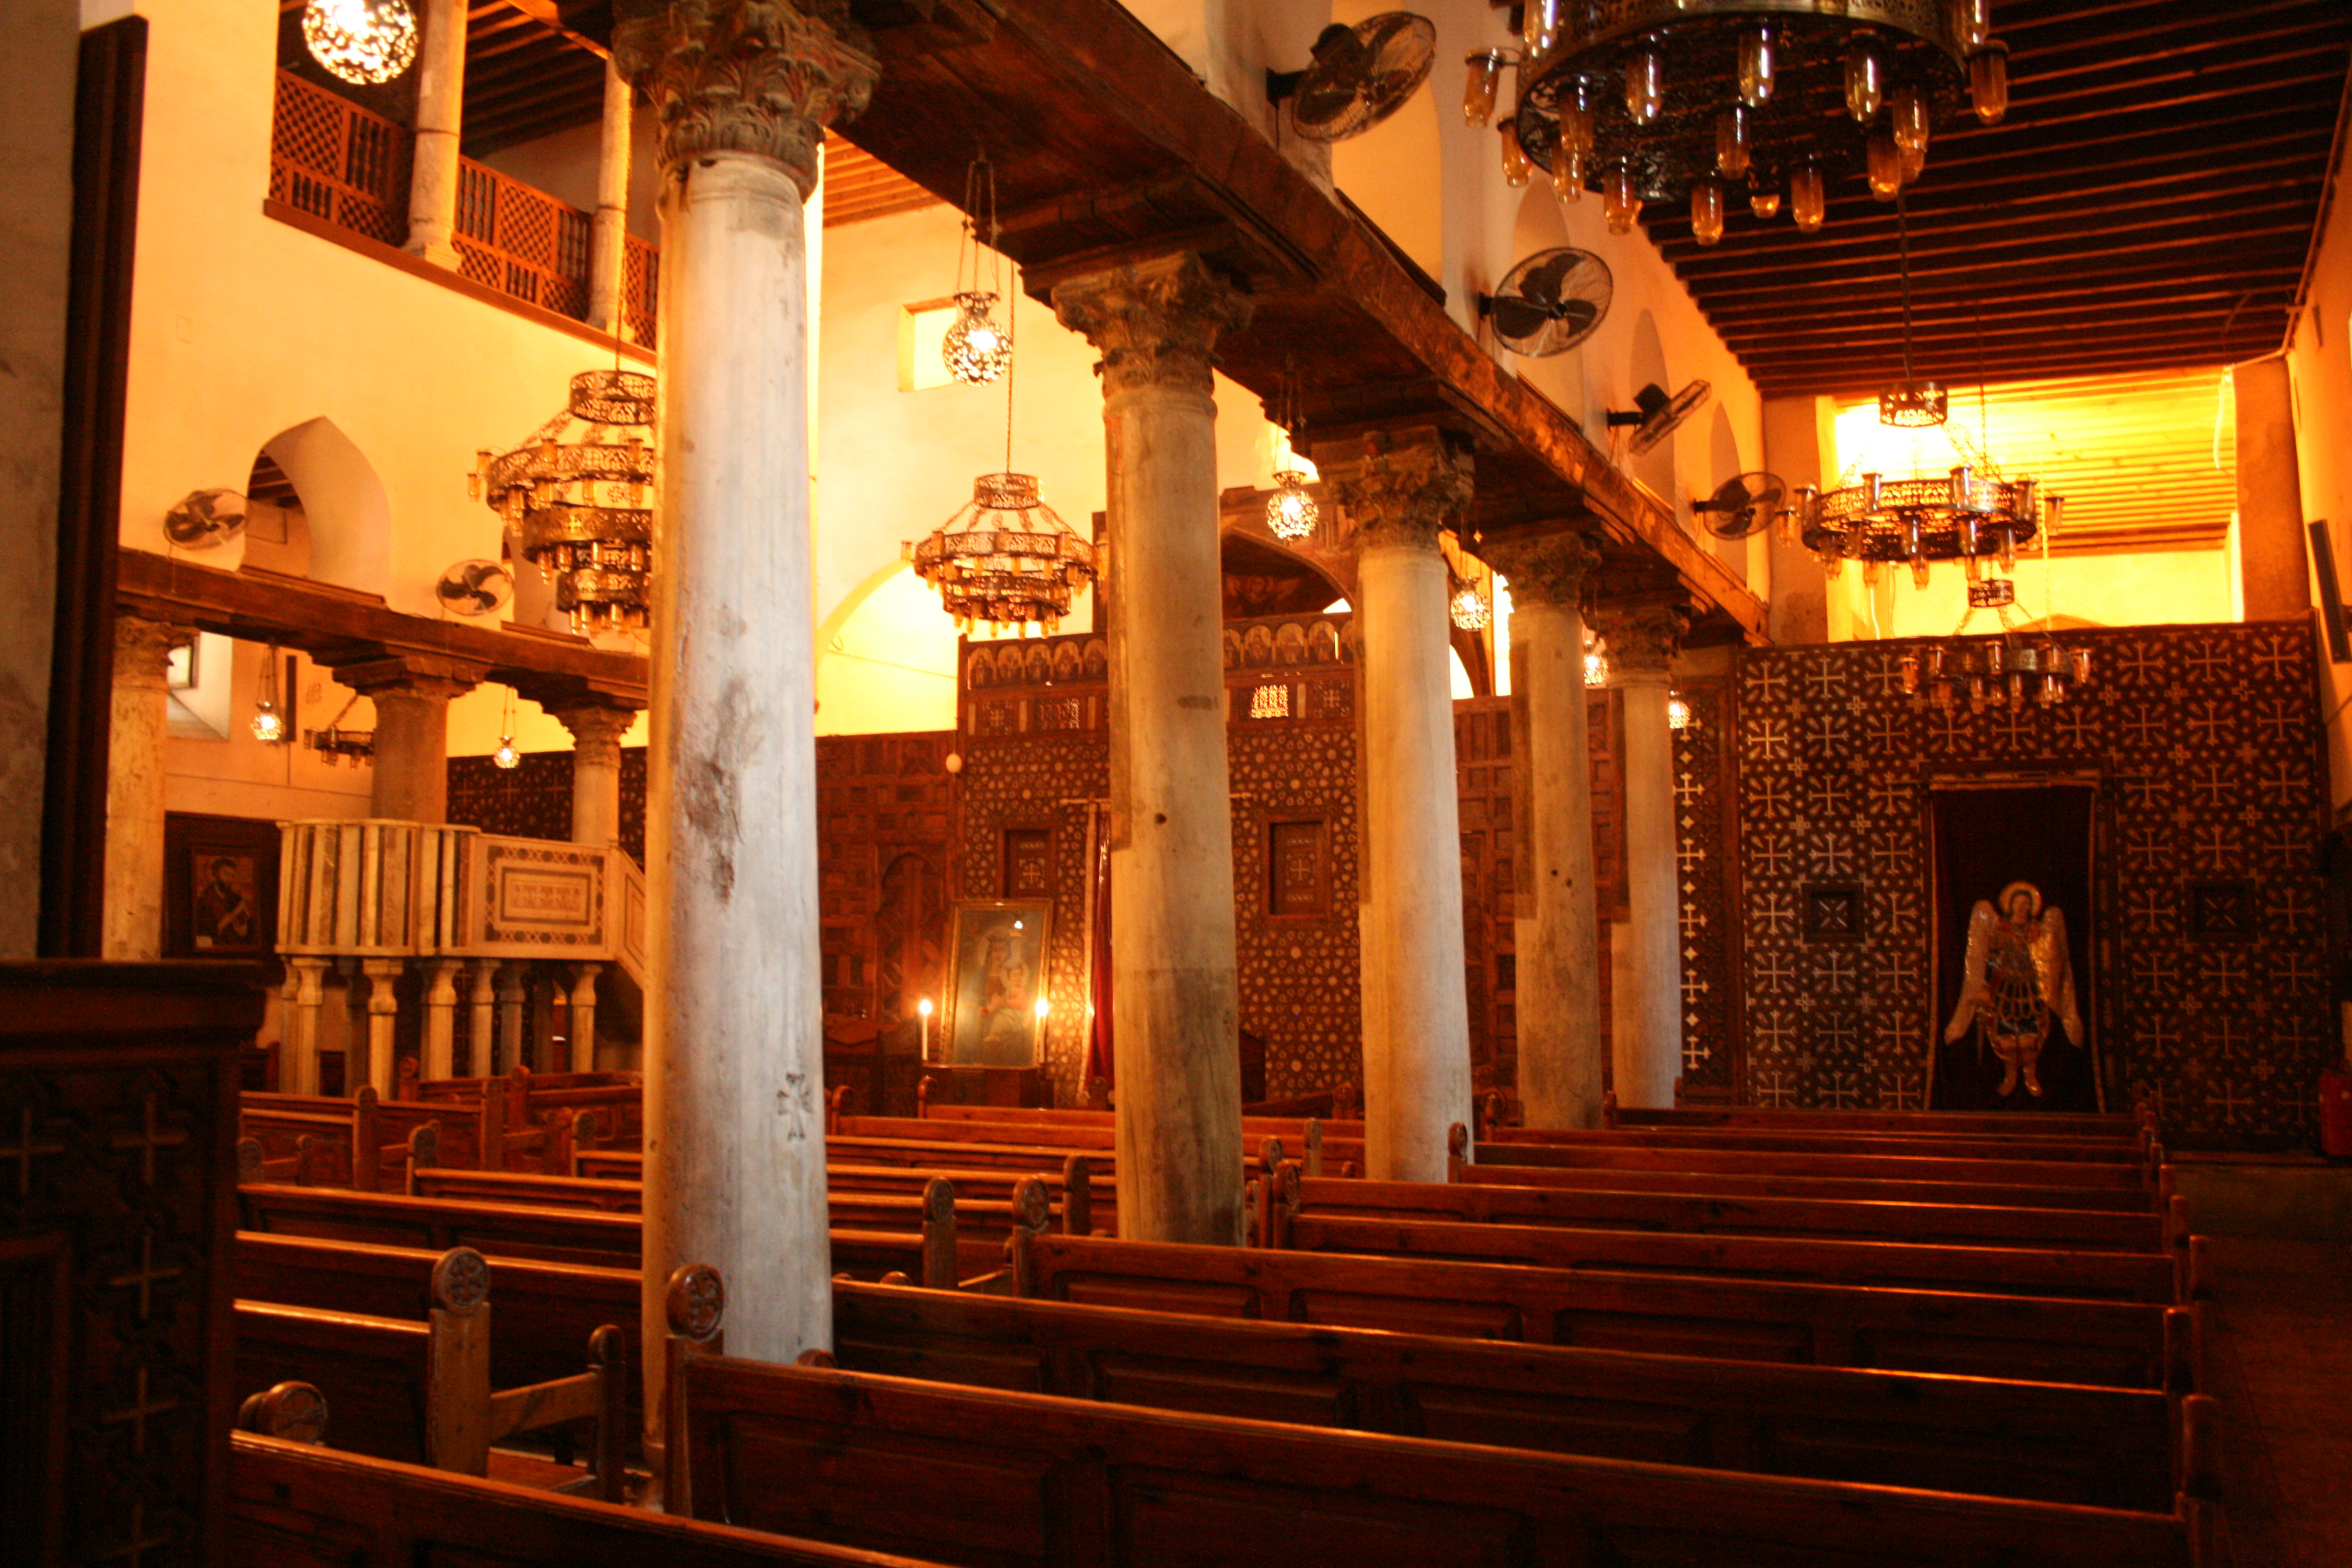 coptic orthodox church dating St thomas the hermit coptic orthodox church is the first church under this saint outside of egypt dating back to the early years of christ.